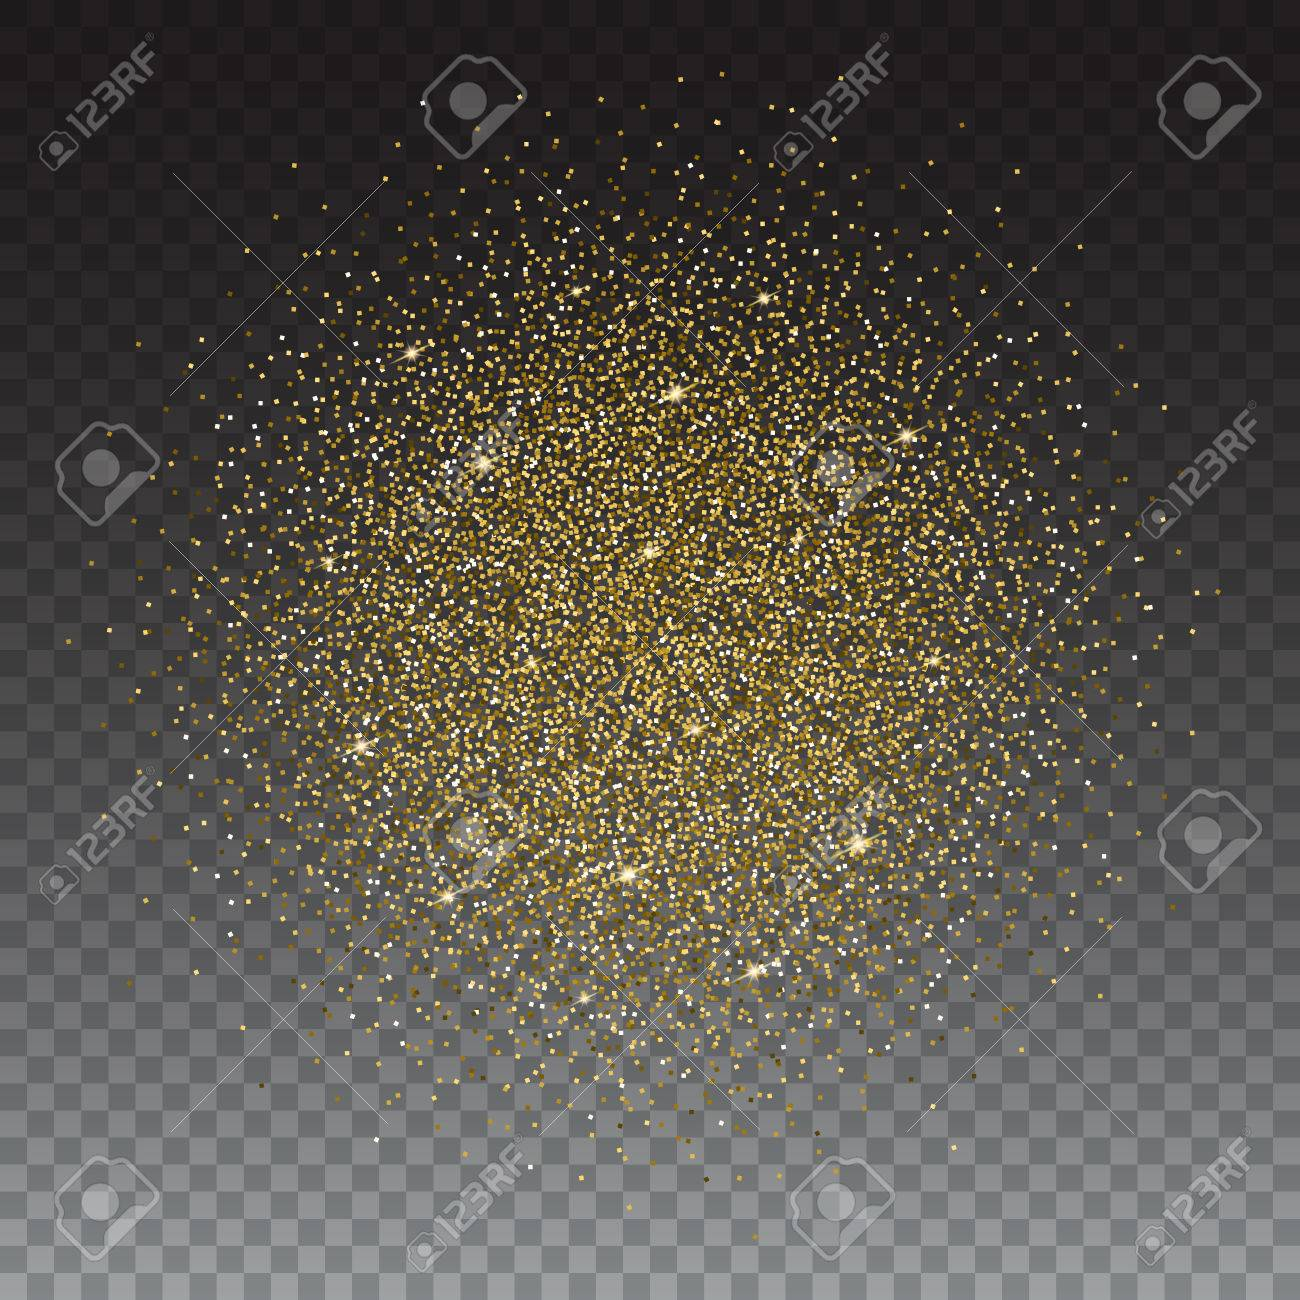 Gold glitter bright vector transparent background golden sparkles - Gold Glitter Bright Vector Transparent Background Golden Sparkles Shiny Texture Excellent